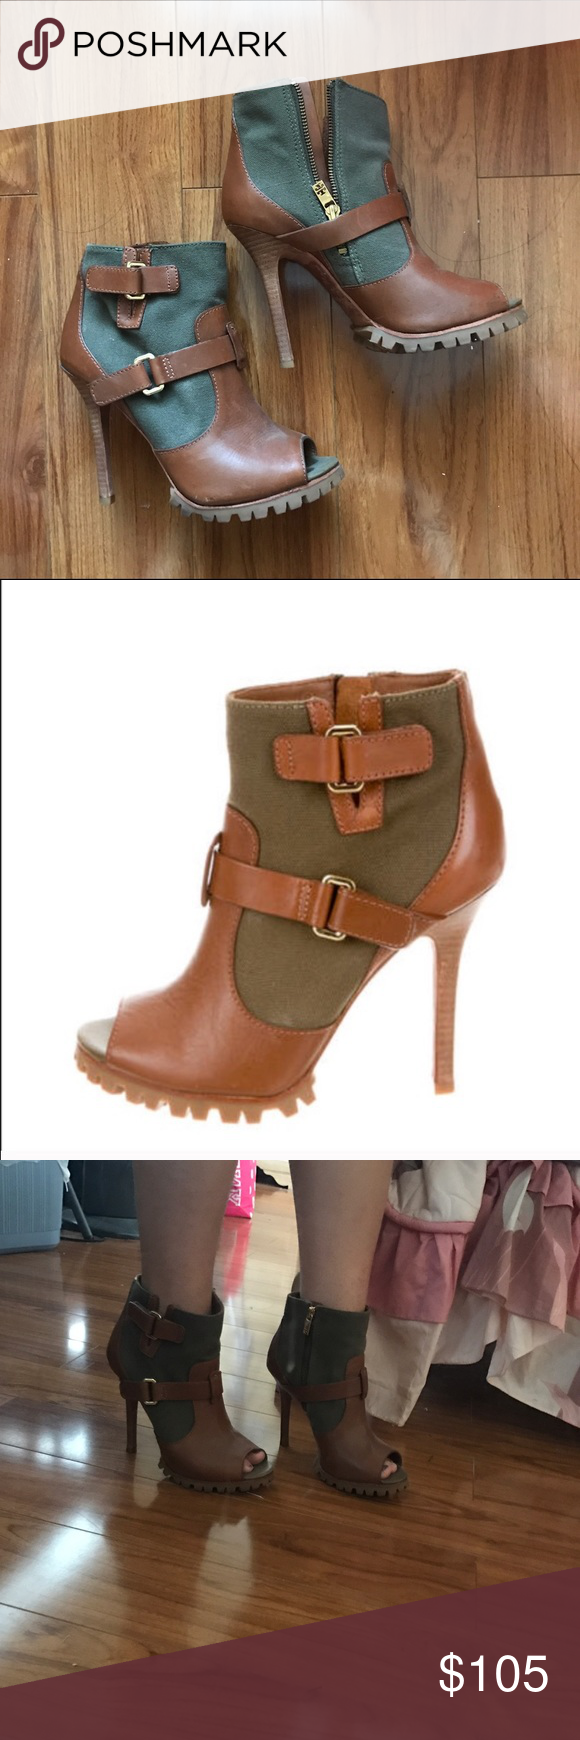 Tory Burch Heeled Leather Boots An awesome pair of Tory Burch booties with army green/olive canvas material, brown leather, and gold hardware. There's a zip on the inner side of the boot. Open toed. Has traction on the bottom of the shoe and provides a slide platform. On the bottom it says 9 1/2 M but I'm a size 8 and it almost fits me perfectly so I say its a size 8.5. Tory Burch Shoes Heeled Boots